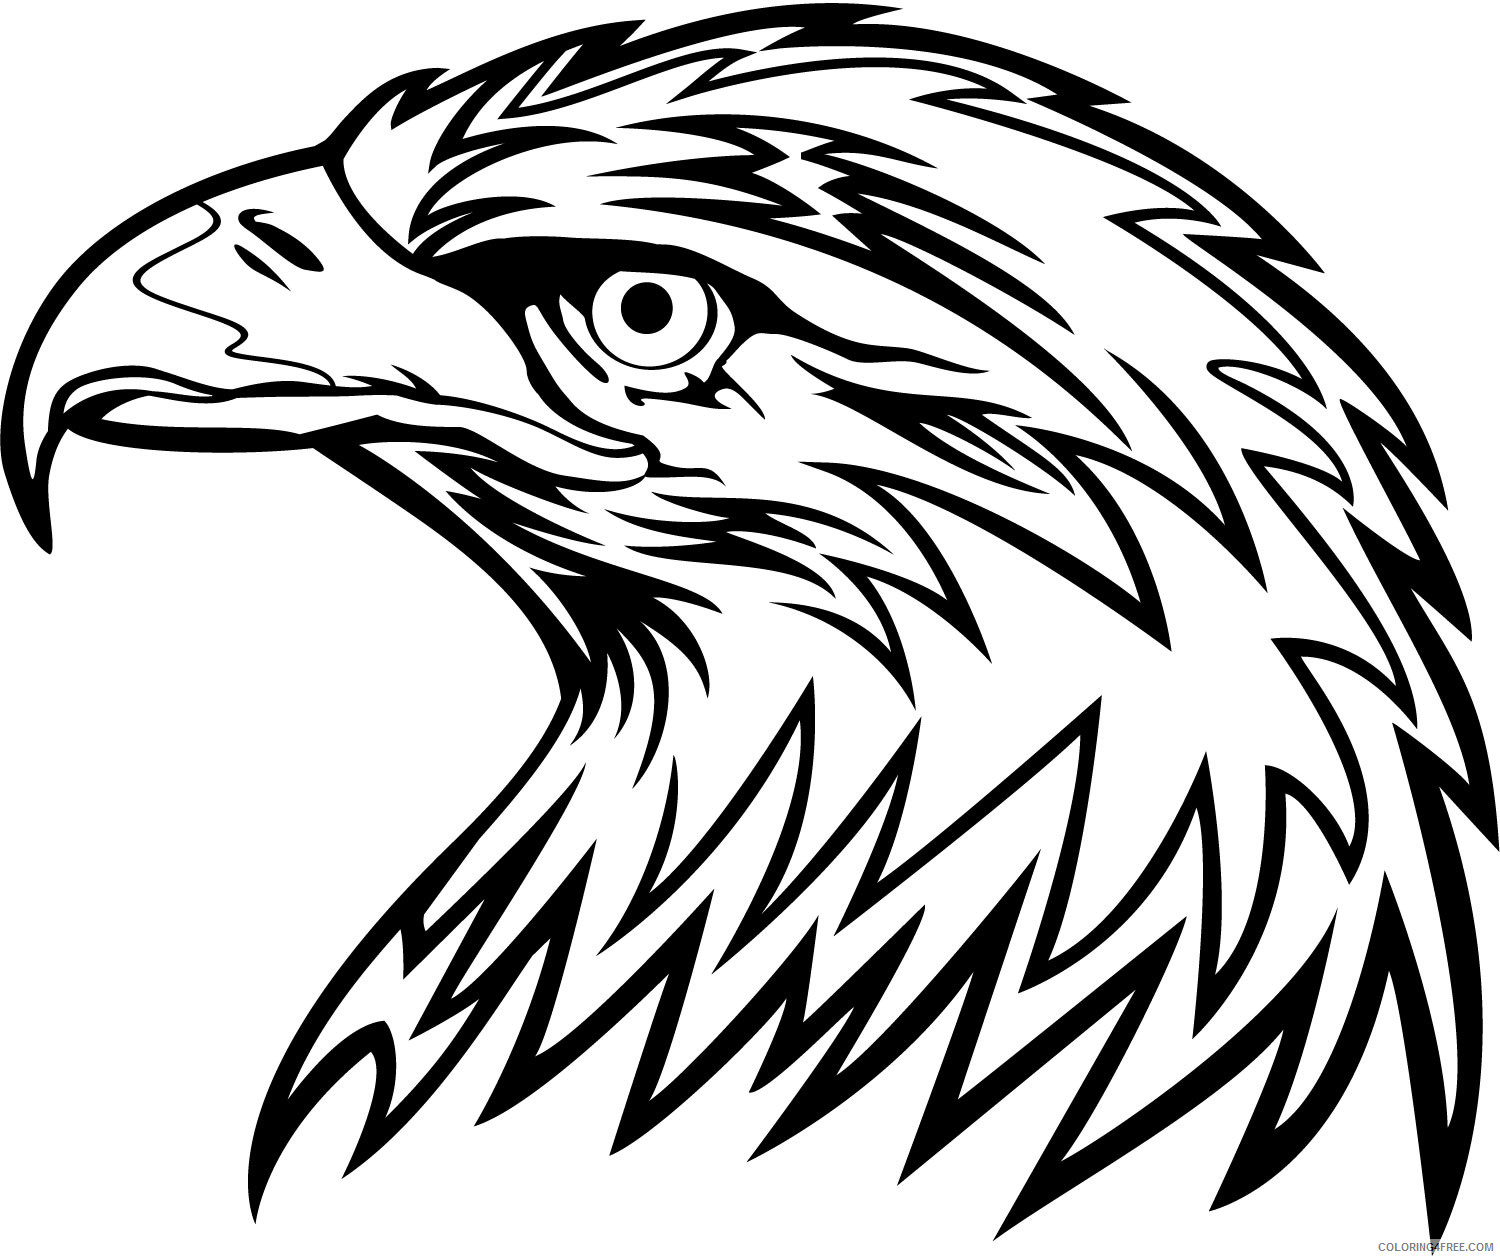 Eagle Coloring Pages strawberry vector soccer player eagle Printable Coloring4free